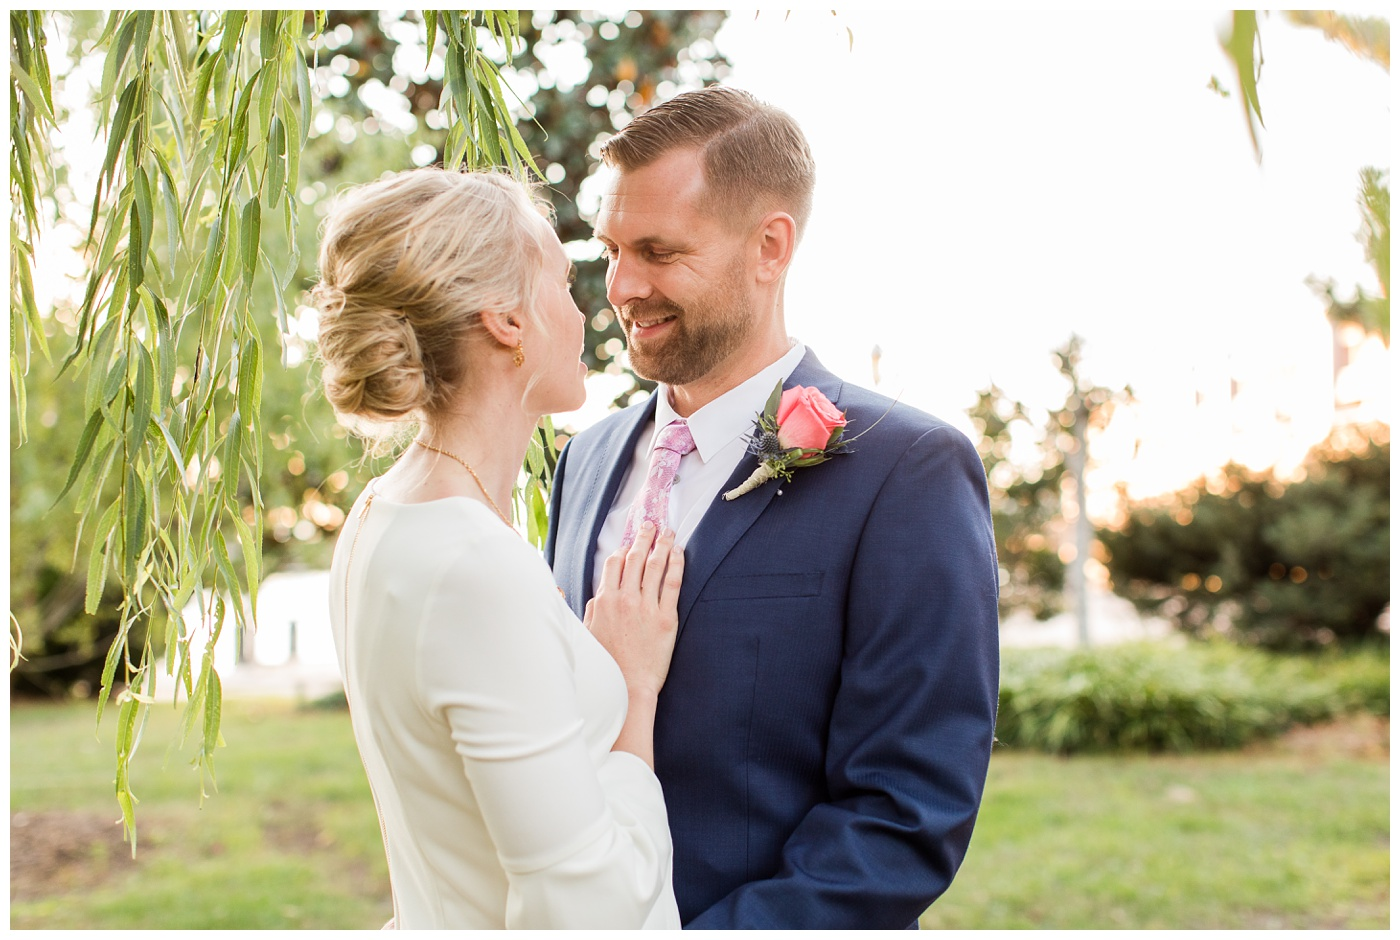 Tanja & J.C. | Norfolk Courthouse Wedding